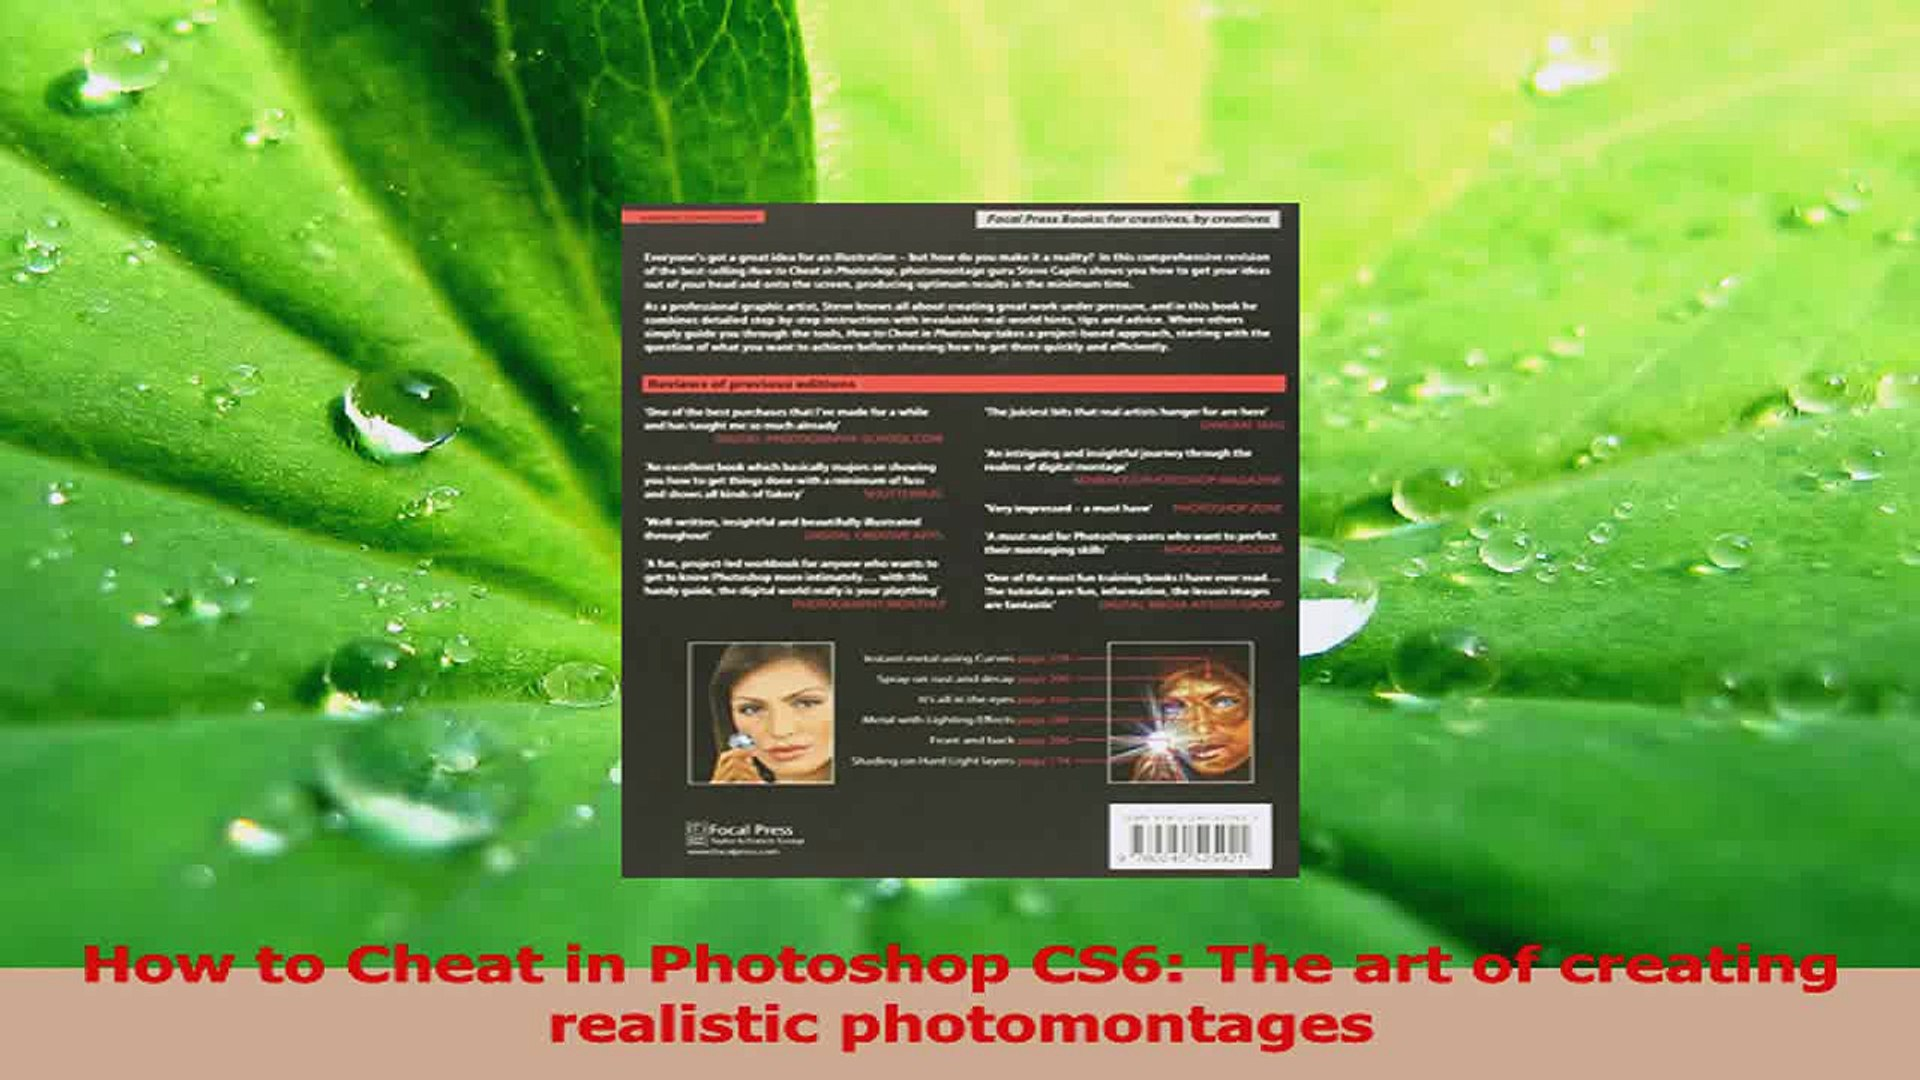 The art of creating realistic photomontages How to Cheat in Photoshop CS6